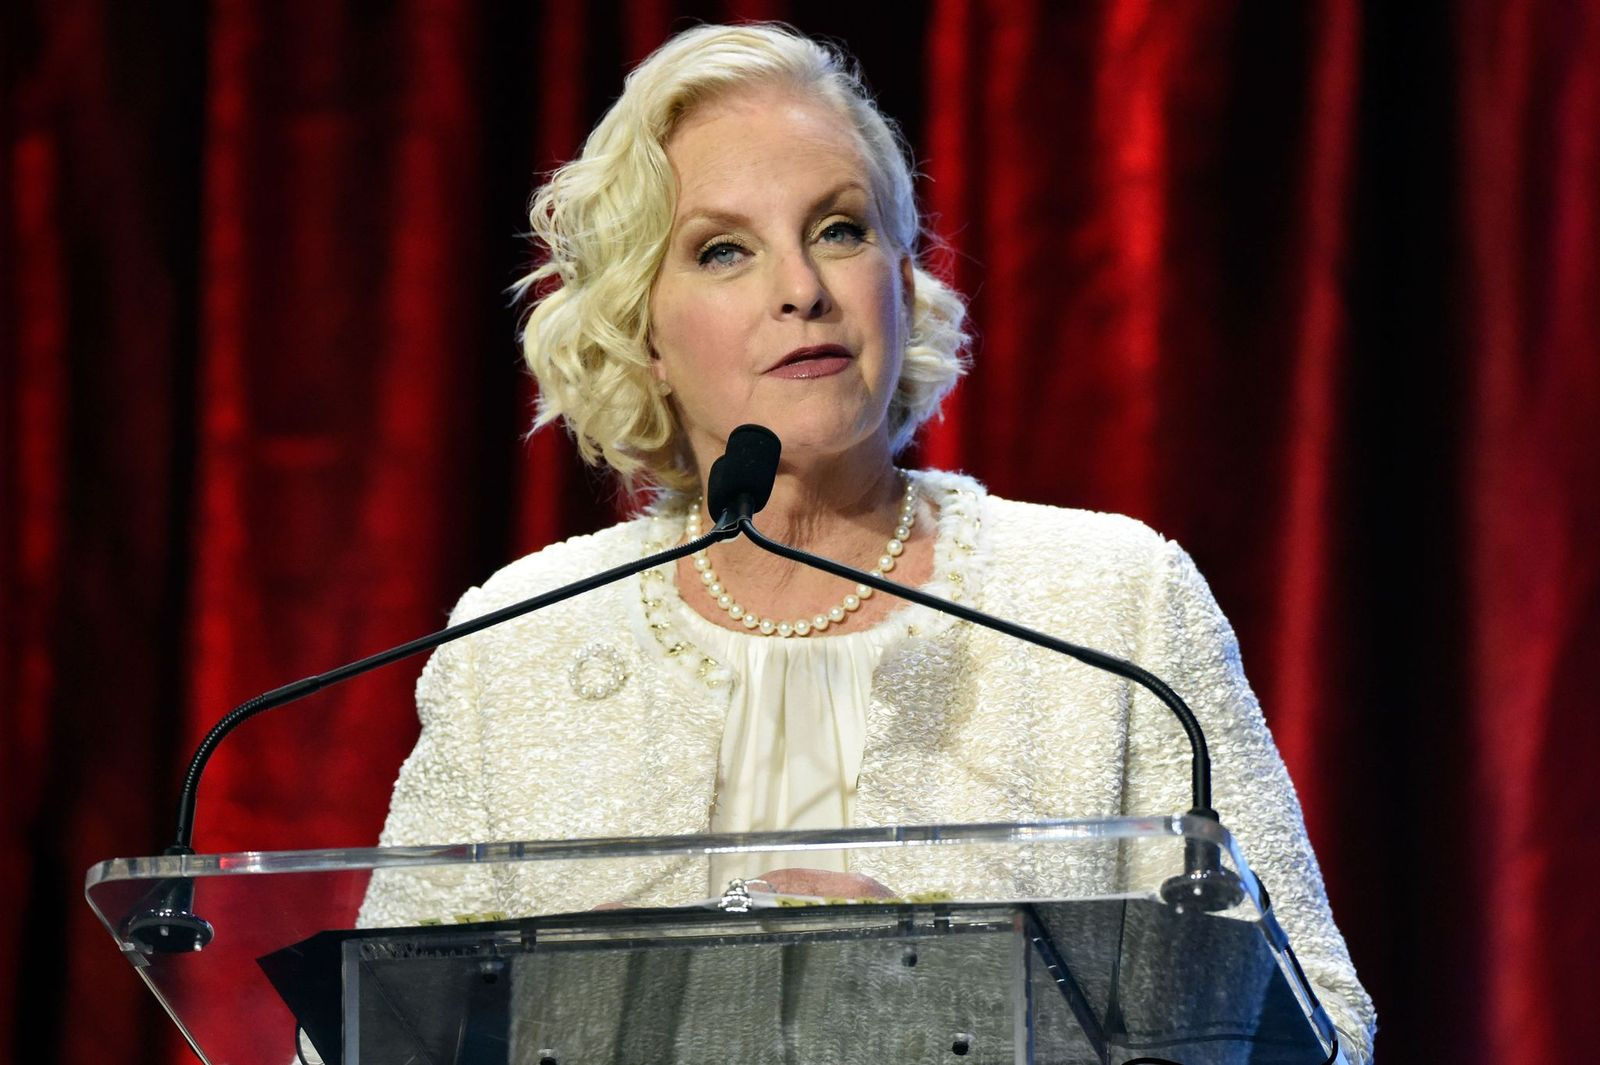 Cindy McCain at the Muhammad Ali Humanitarian Awards at Marriott Louisville Downtown on September 17, 2016,  in Louisville, Kentucky | Photo: Getty Images